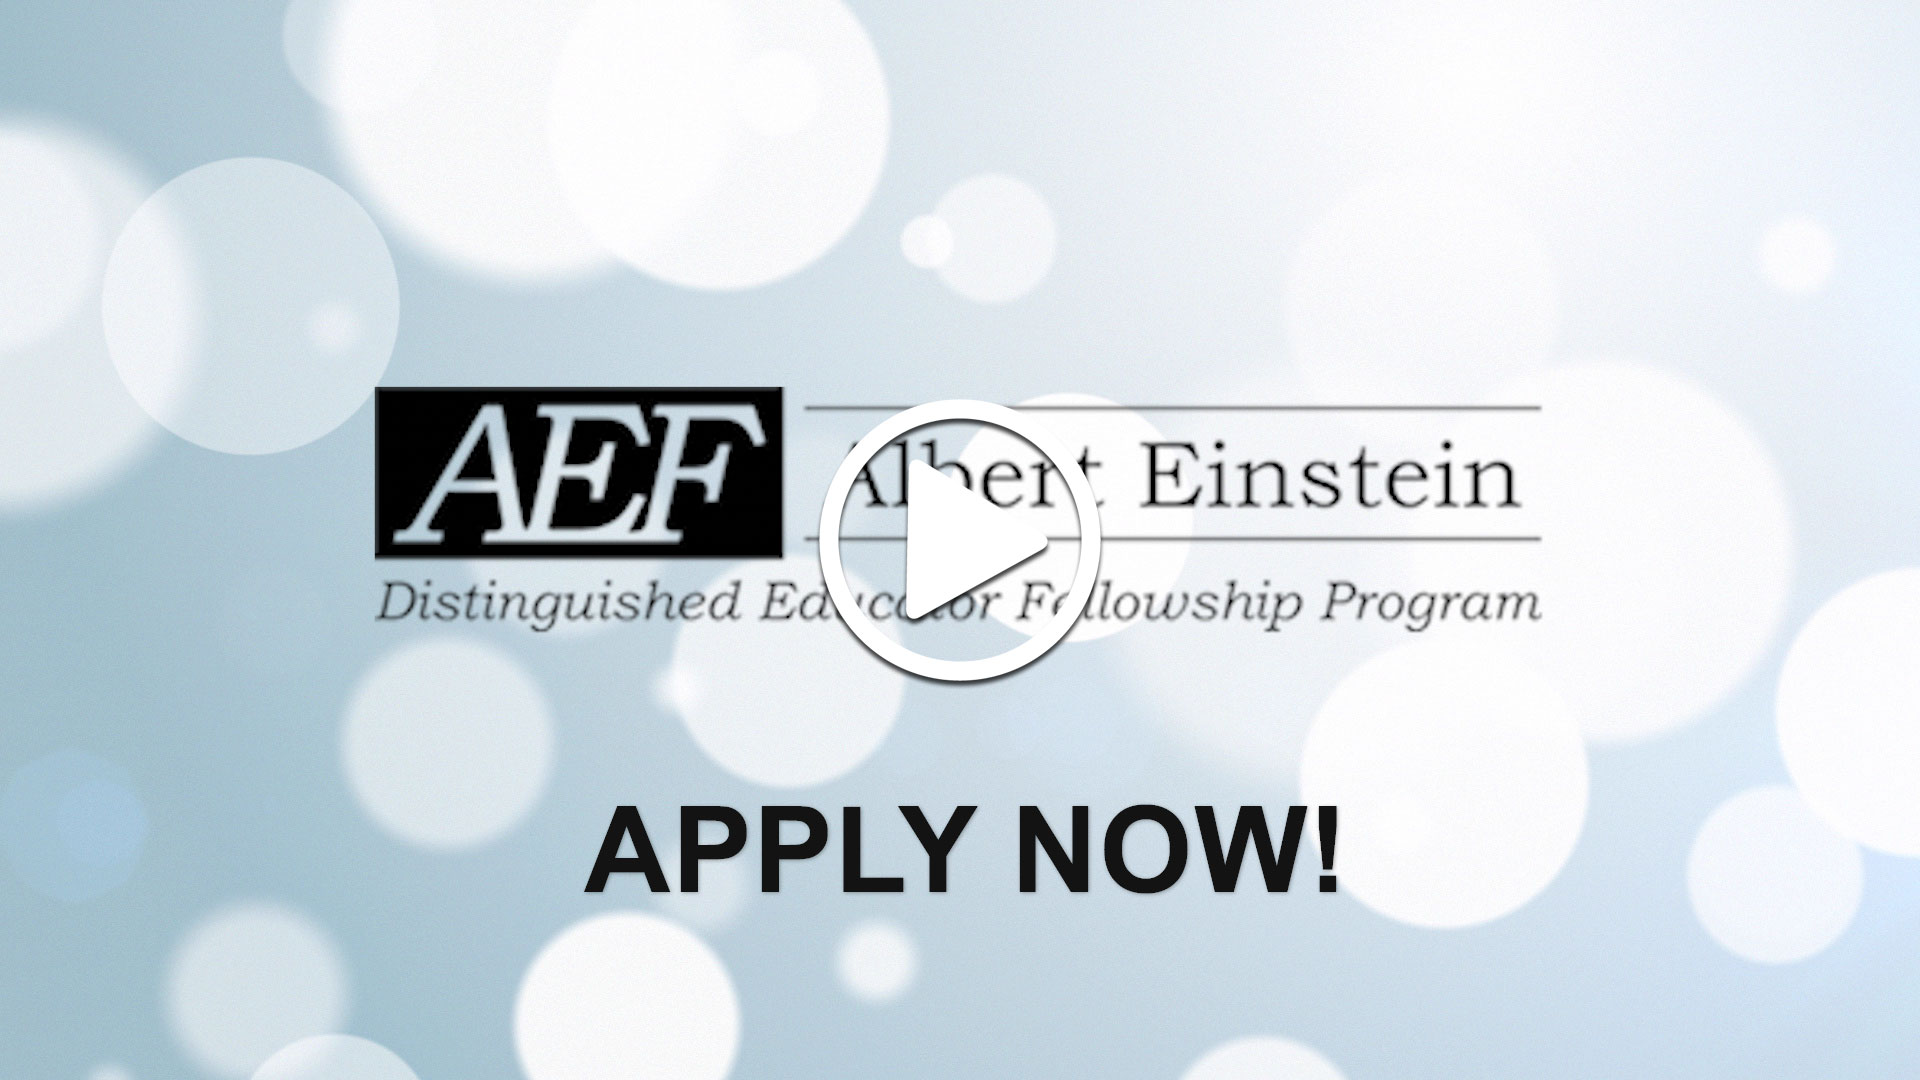 Watch our careers video for available job opening Albert Einstein Distinguished Educator Fellowship in Washington D.C., DC, USA